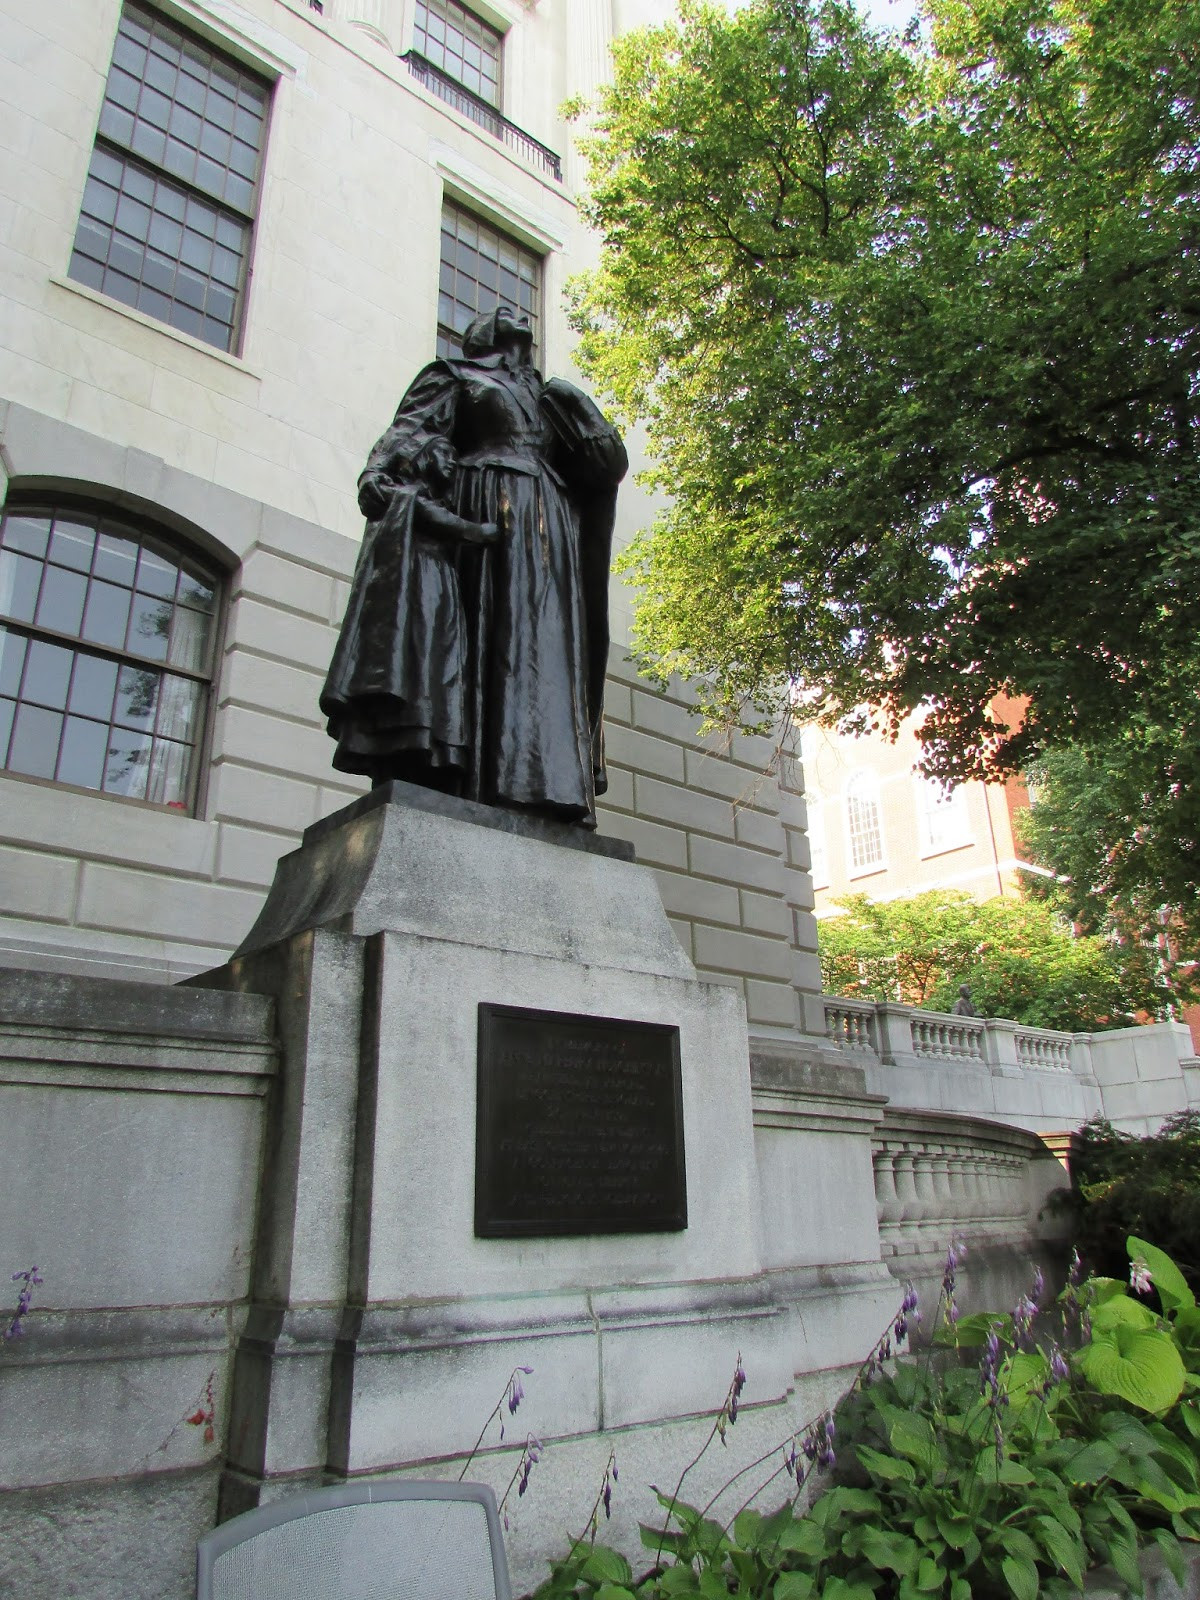 anne hutchinson versus massachusetts Anne hutchinson did not leave rhode island, she fled to rhodeisland she believed that a person could worship god without help of achurch, minister.